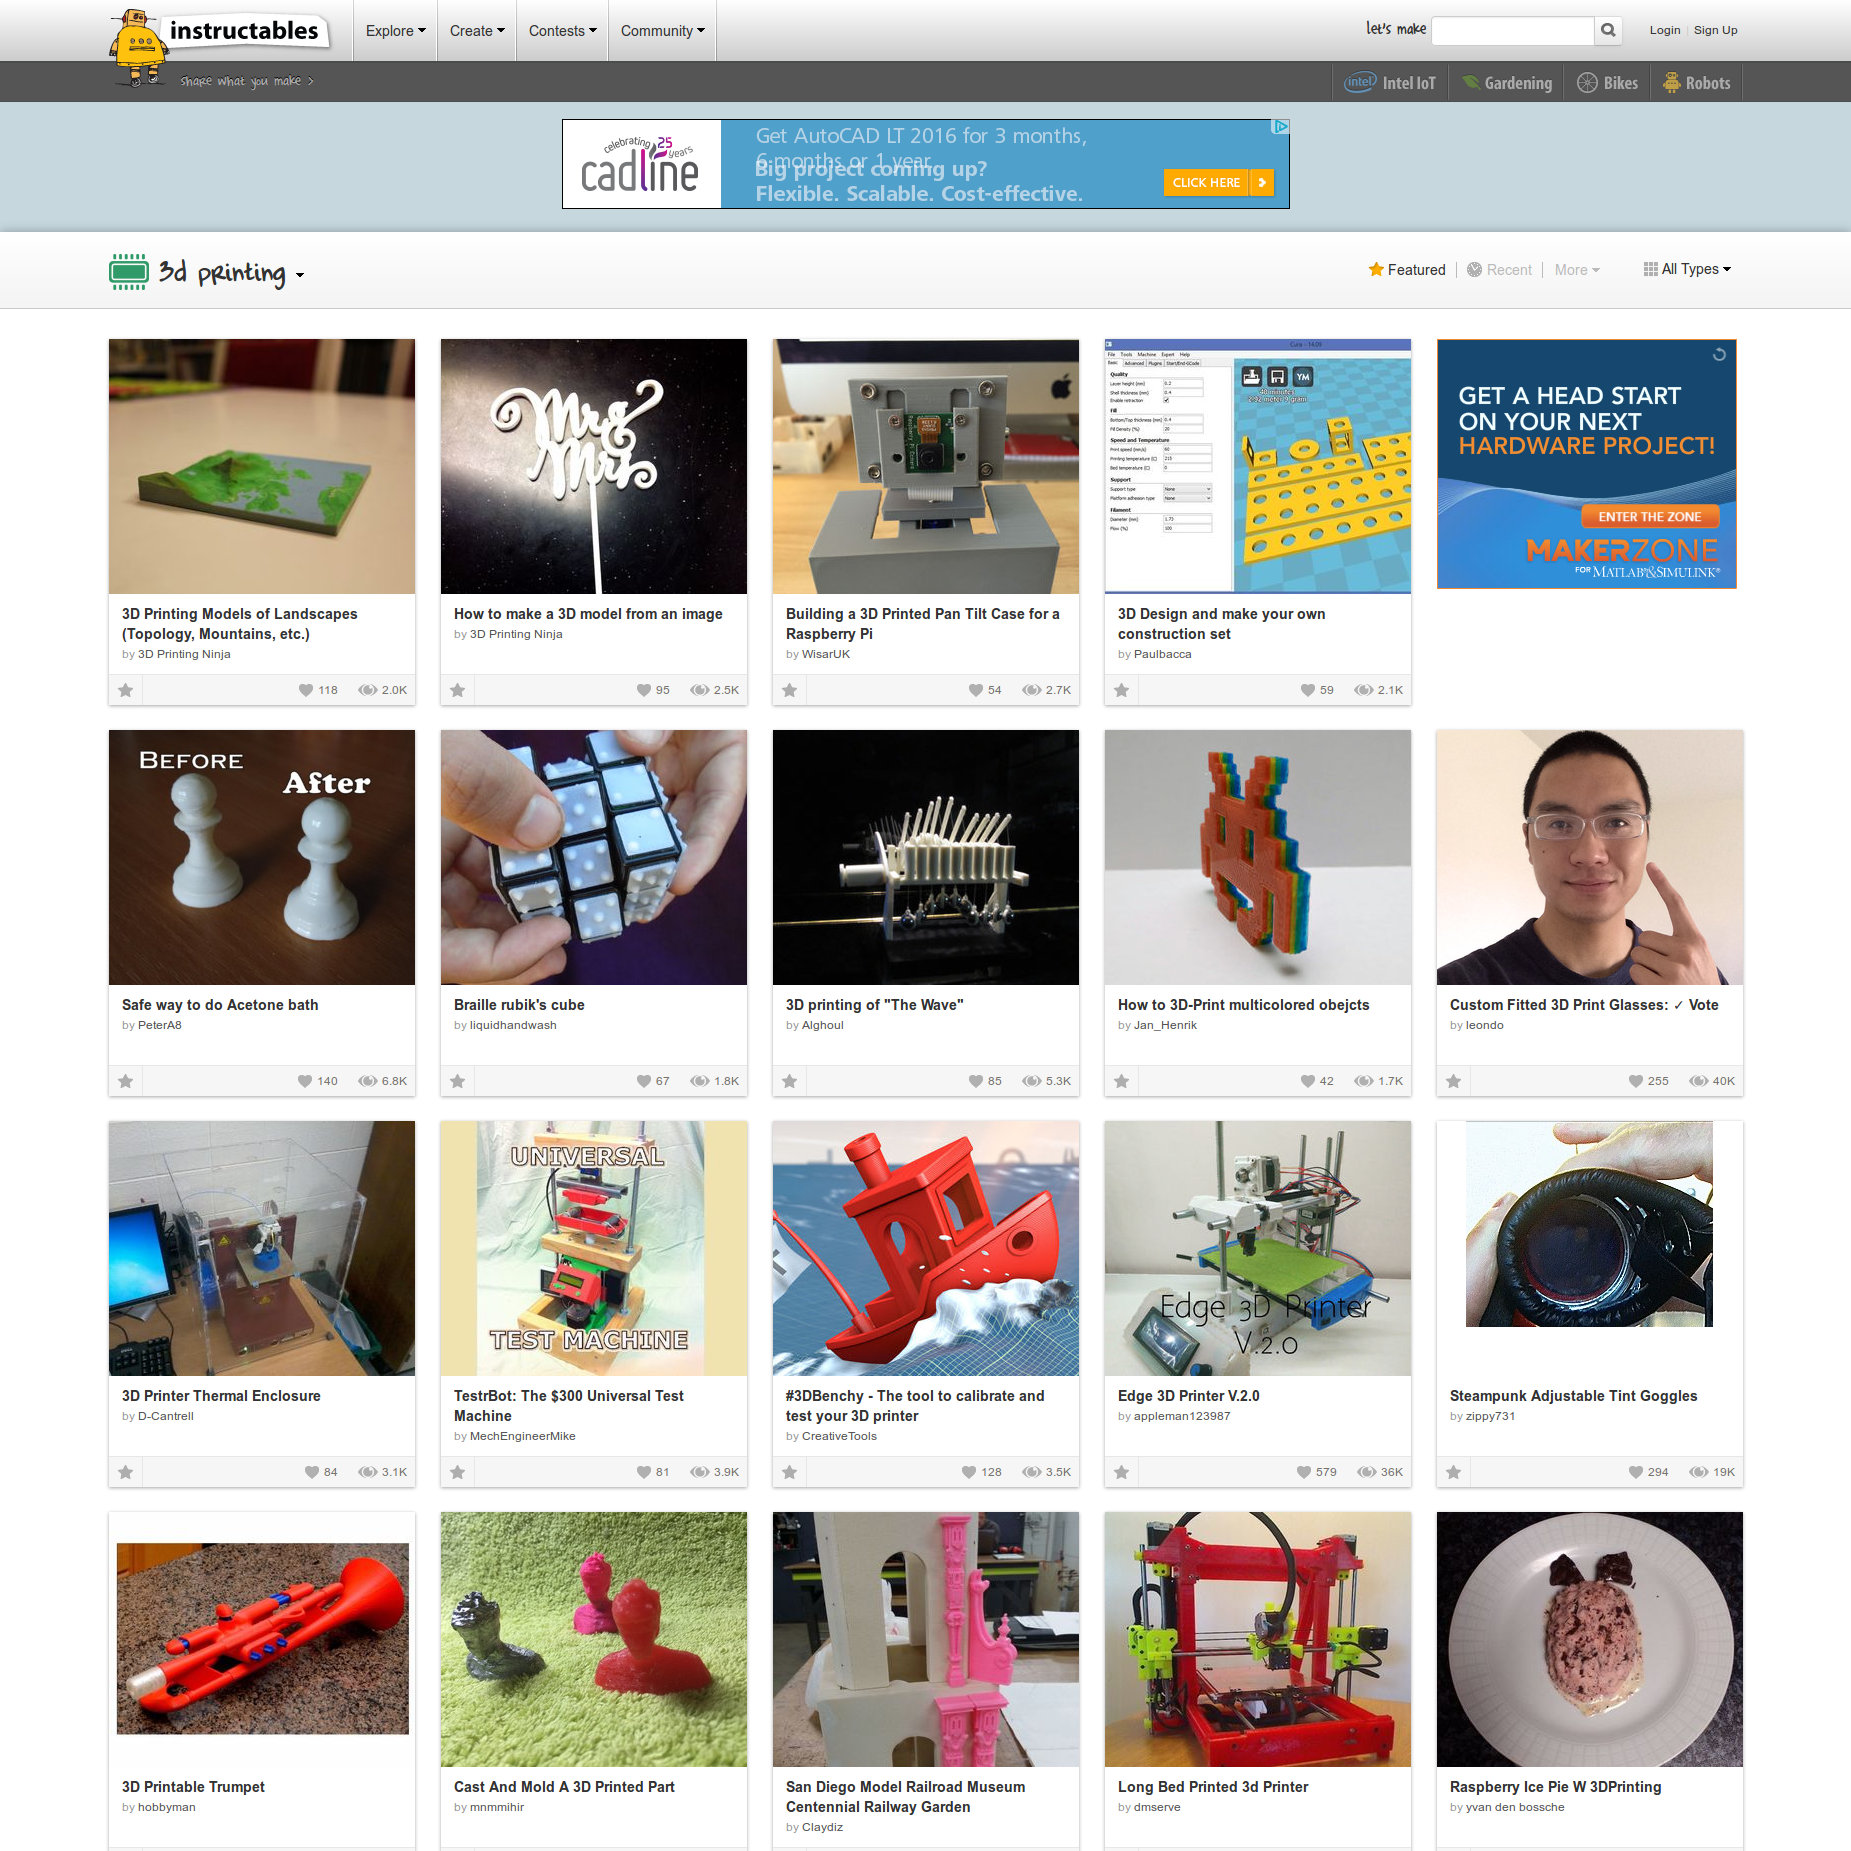 how to make a 3d printer instructables